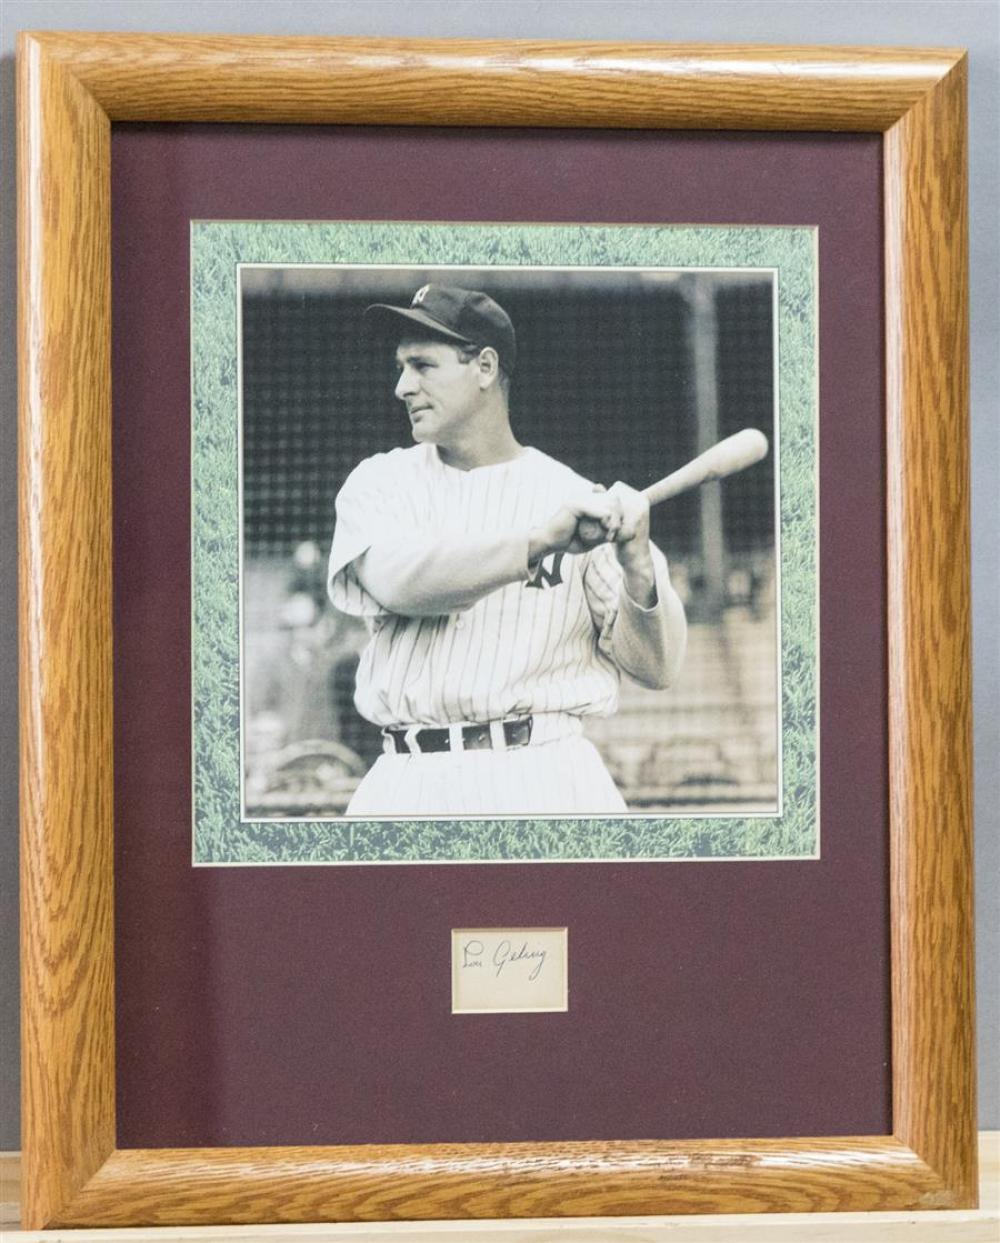 626f9b25c Lou Gehrig cut signature and photograph